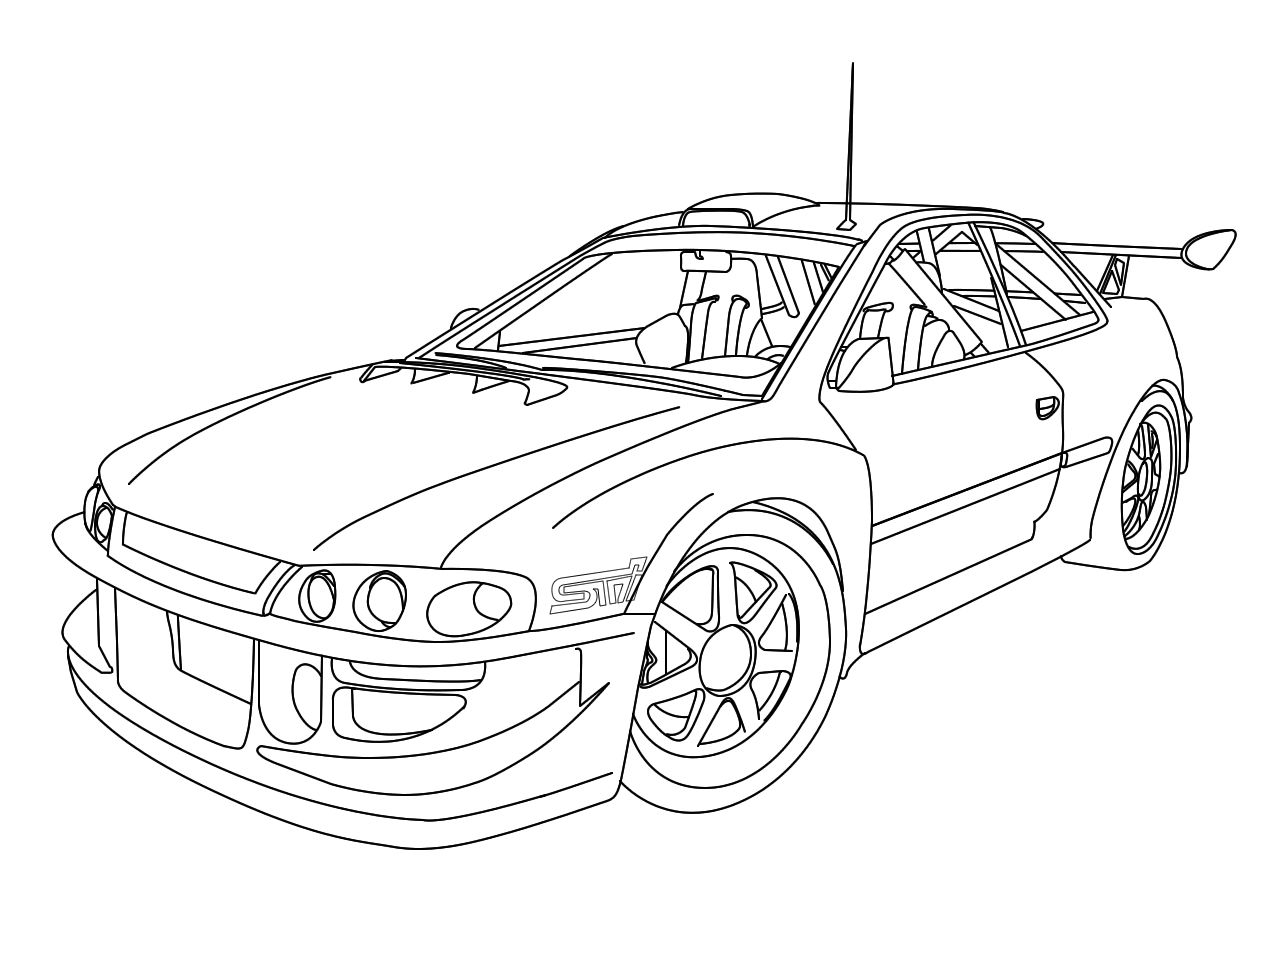 car drawings outline - Google Search | cars to draw | Pinterest